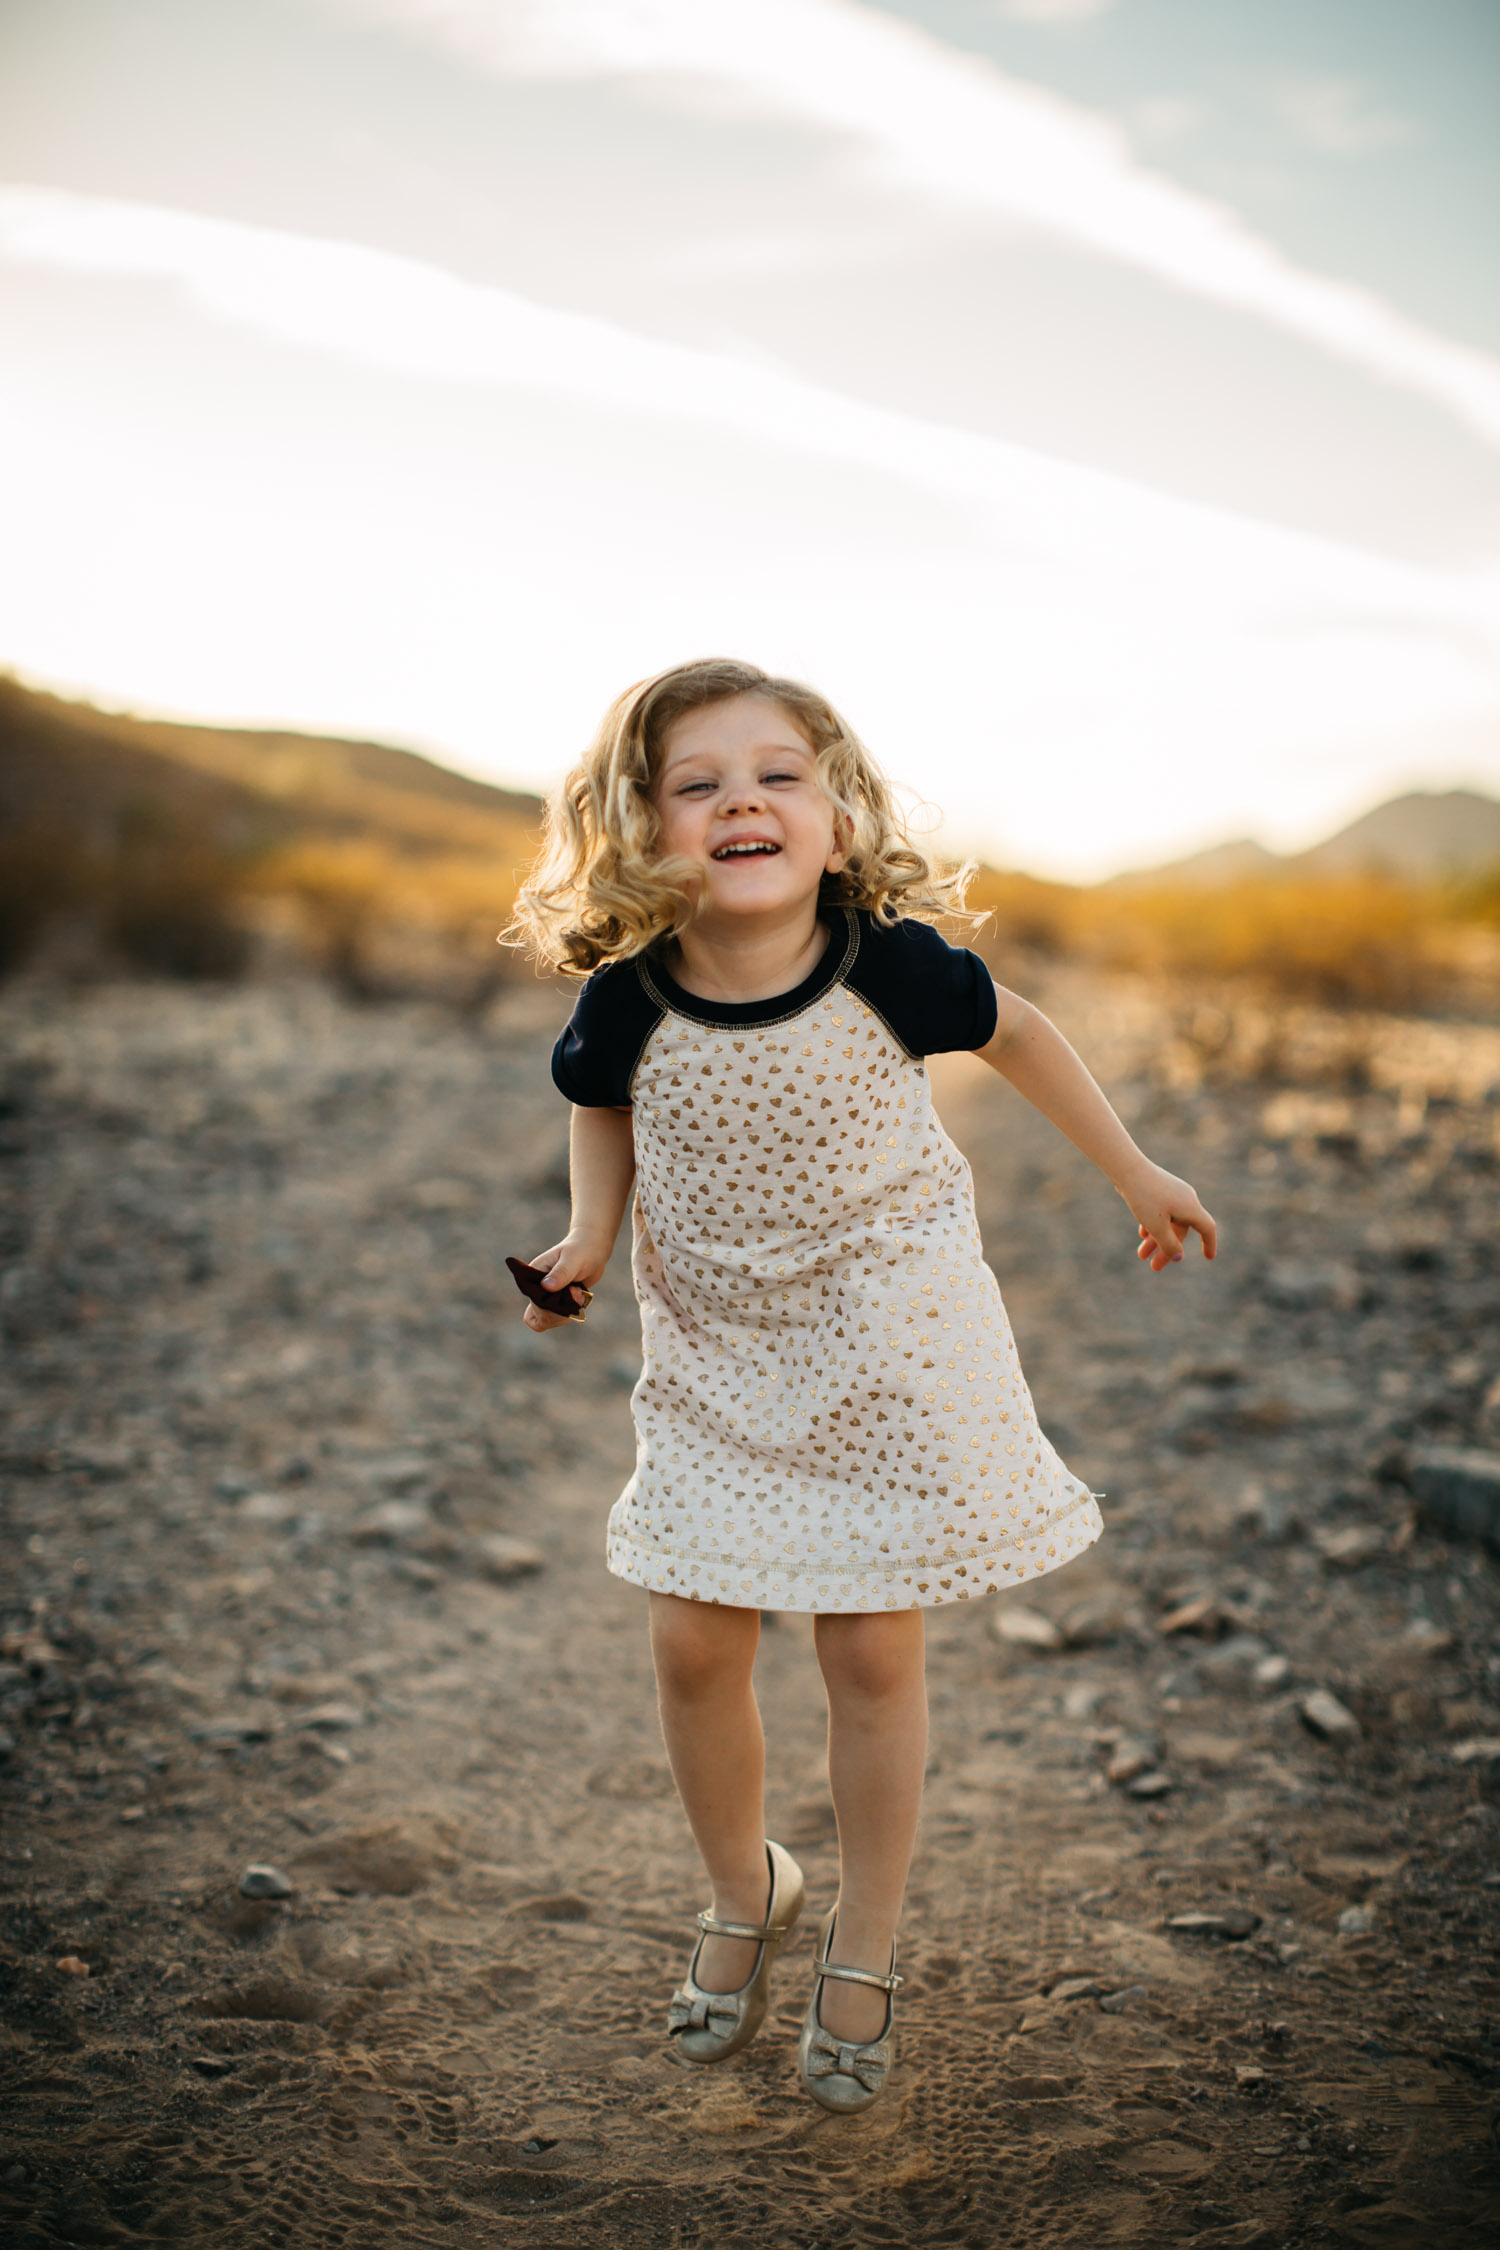 portrait of happy little girl jumping laughing Phoenix Arizona desert mountain location